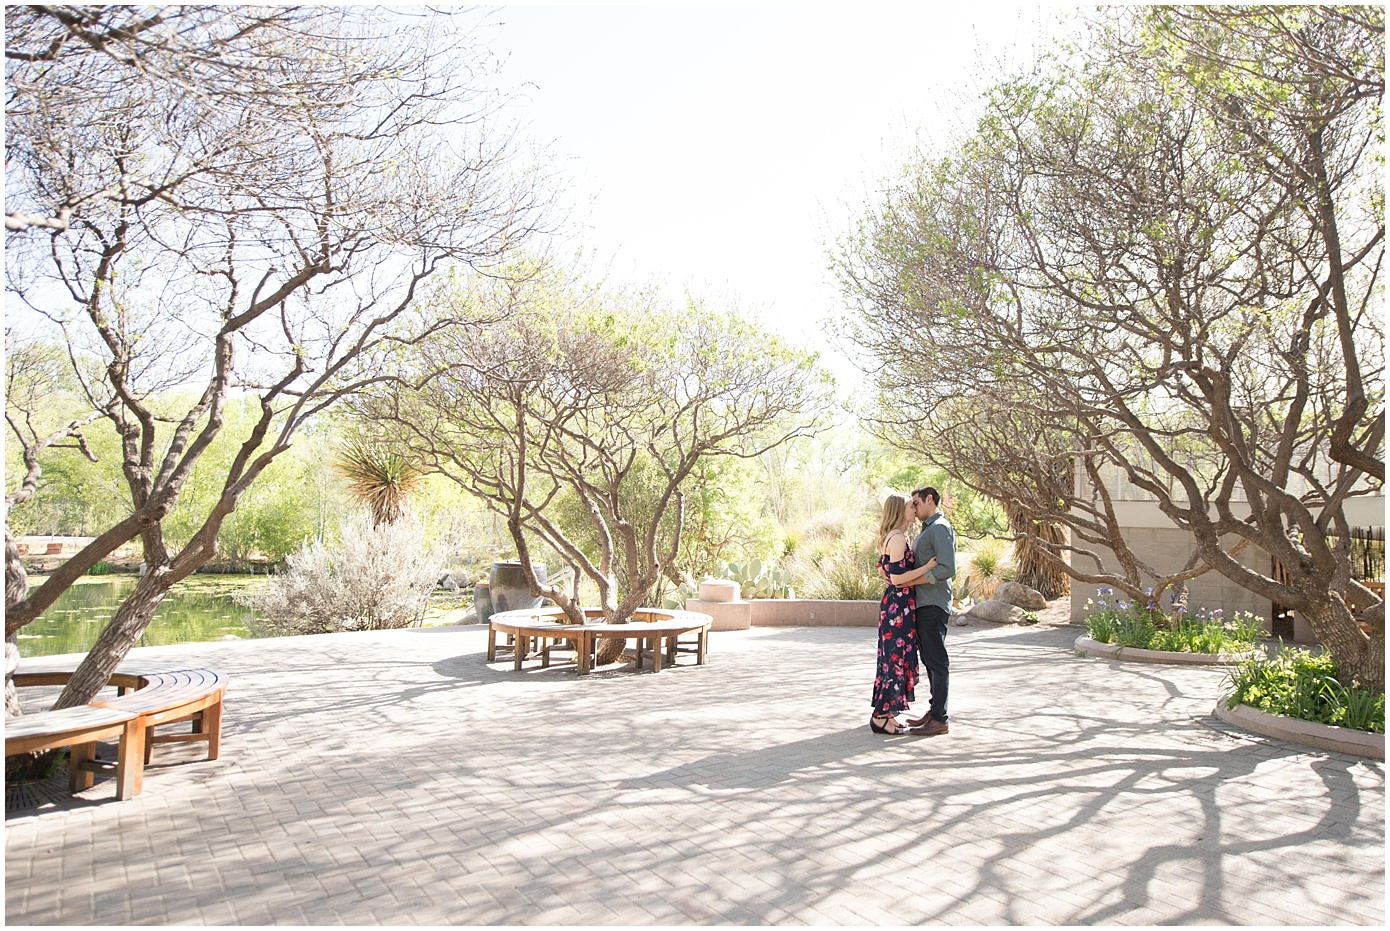 kayla kitts photography-kristi-sam-botanic-gardens-sandia-lakes-albuquerque-engagement_0012.jpg